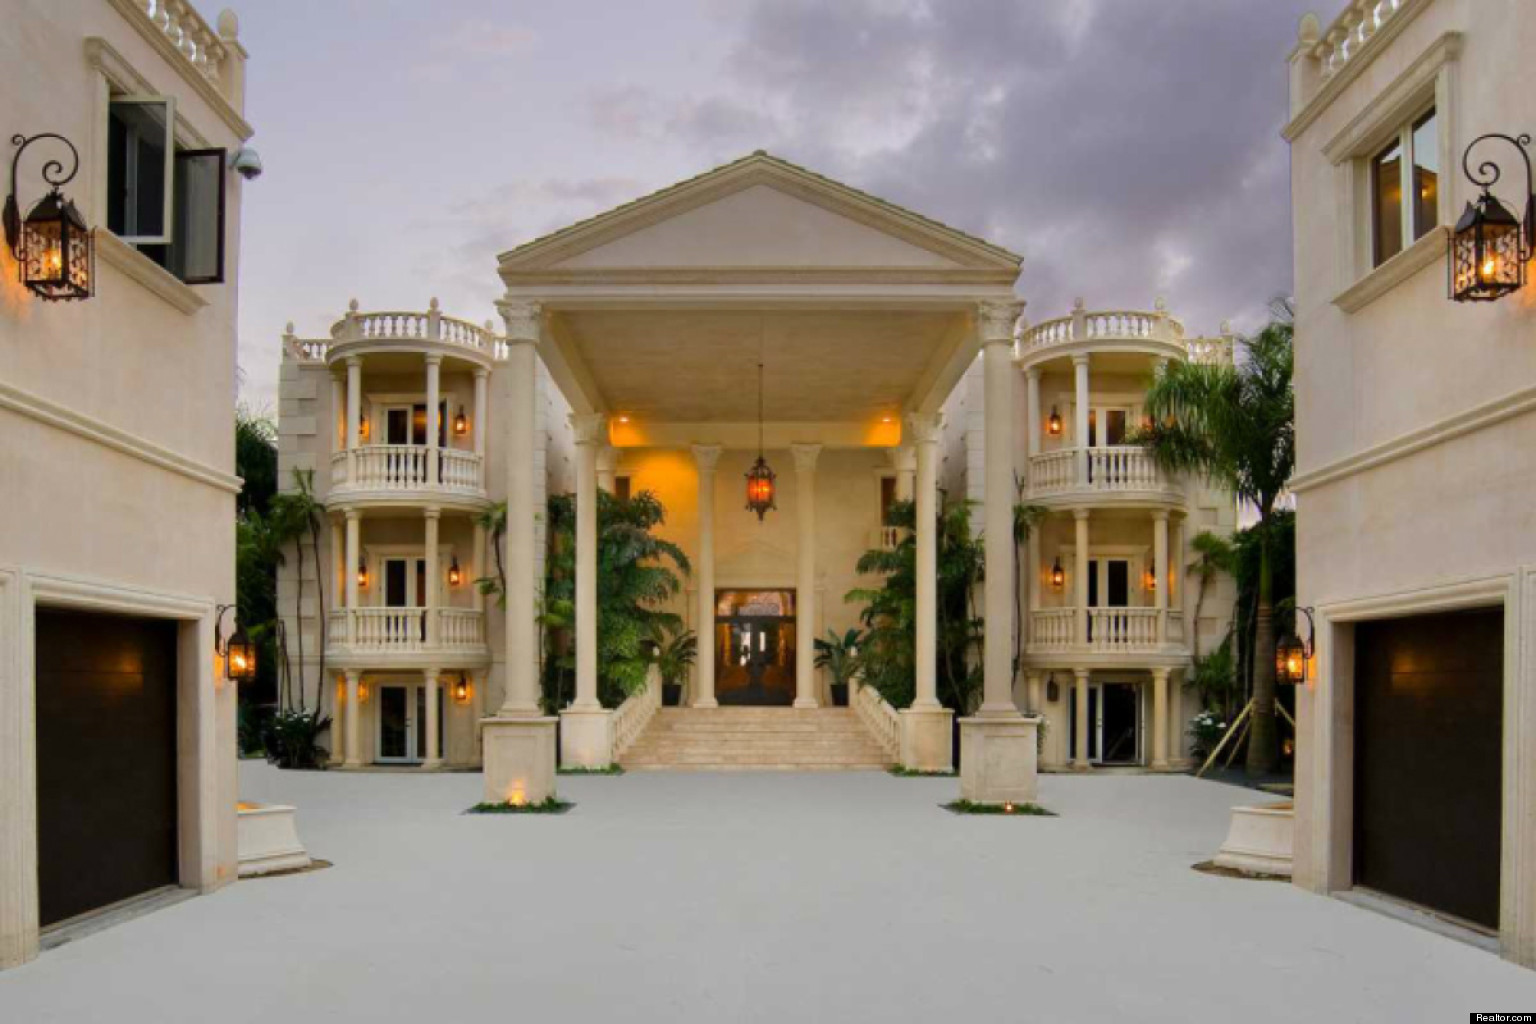 Birdman Buys Scott Storch 39 S Old Miami Beach Mansion For 14 5 Million